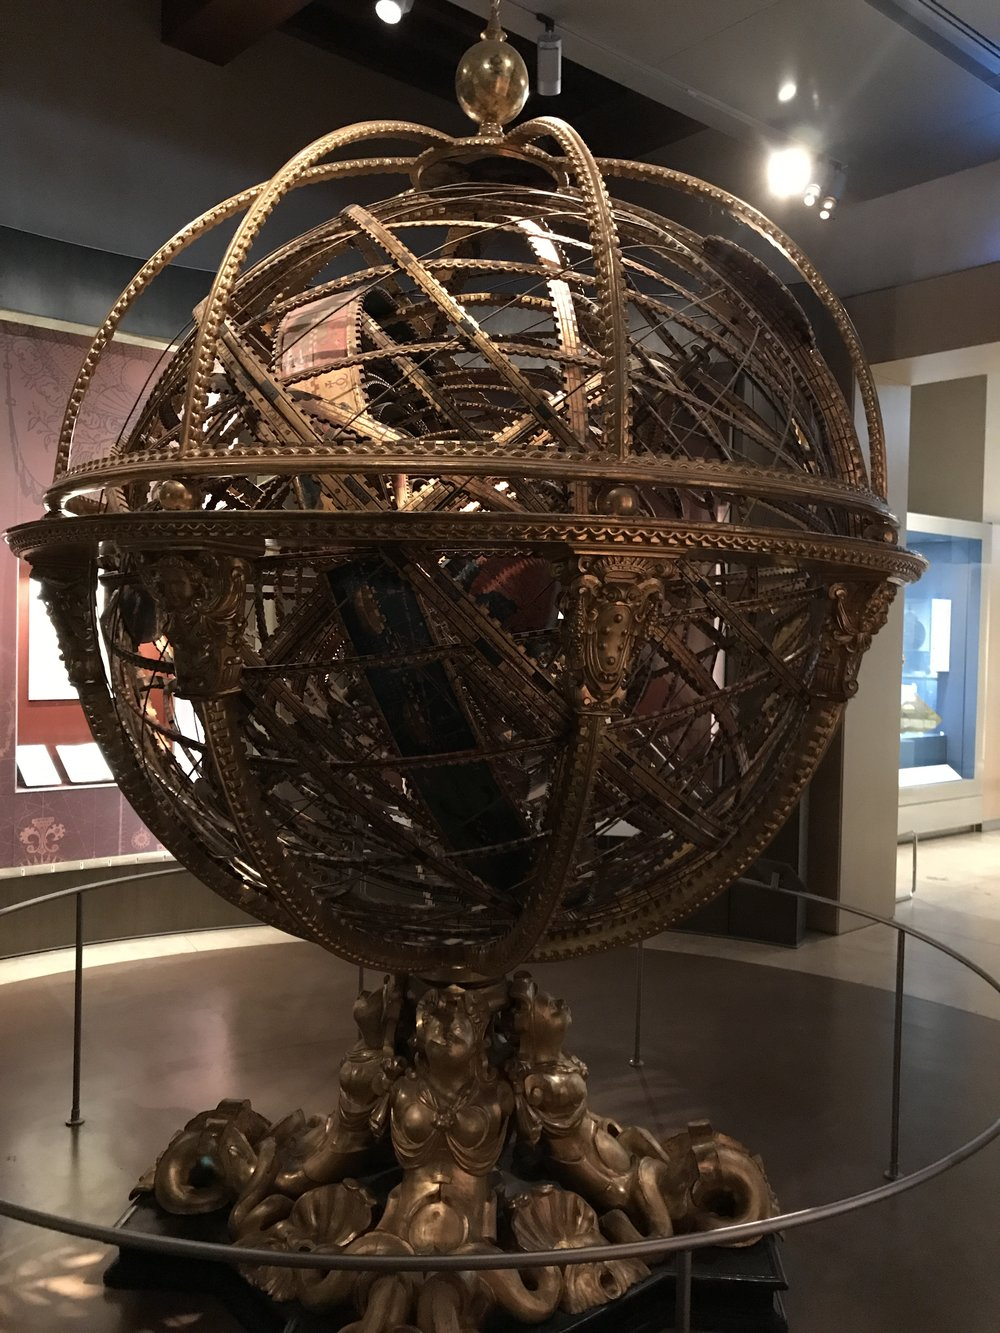 The giant armillary sphere at the Museo Galileo.